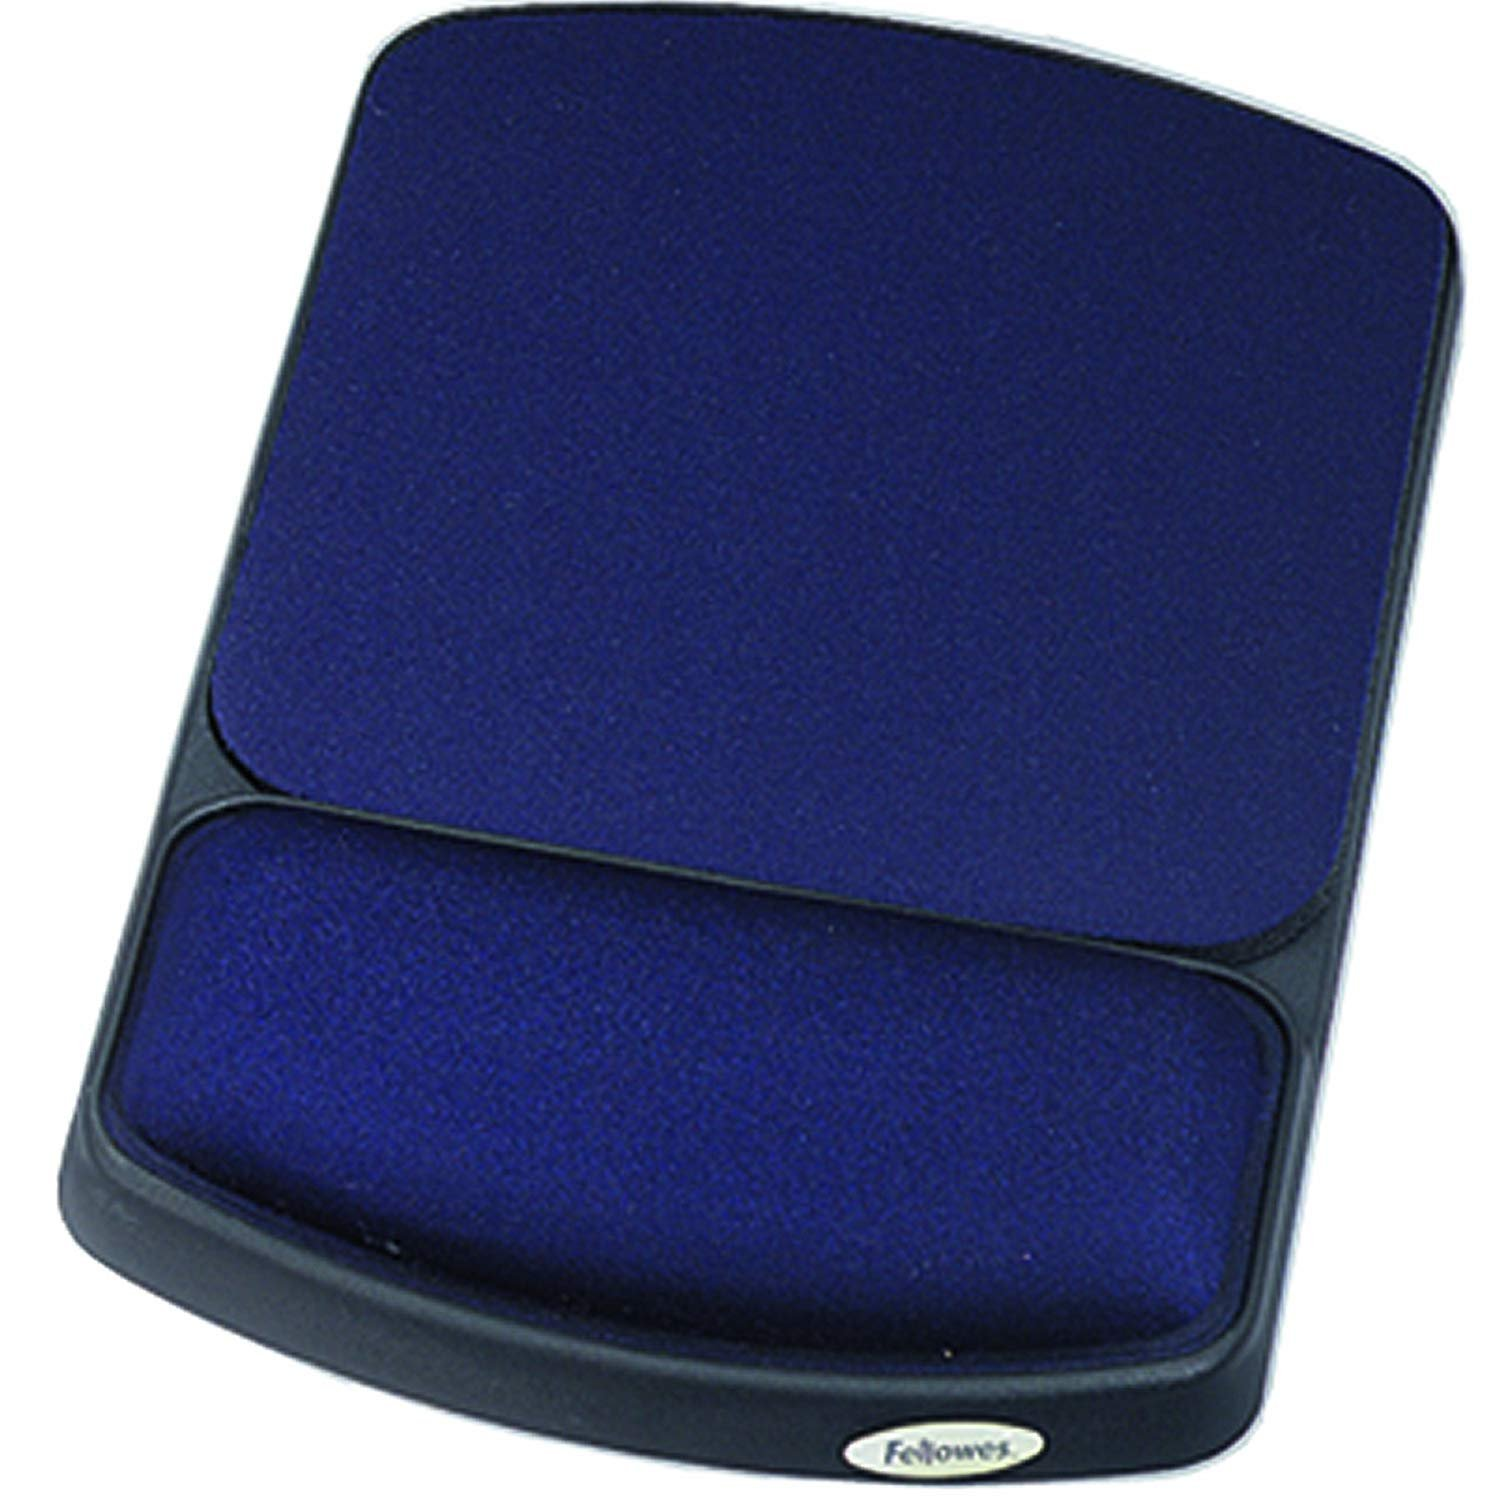 Fellowes Gel Wrist Rest and Mouse Rest, Sapphire/Black (98741) (2-Pack) by Fellowes